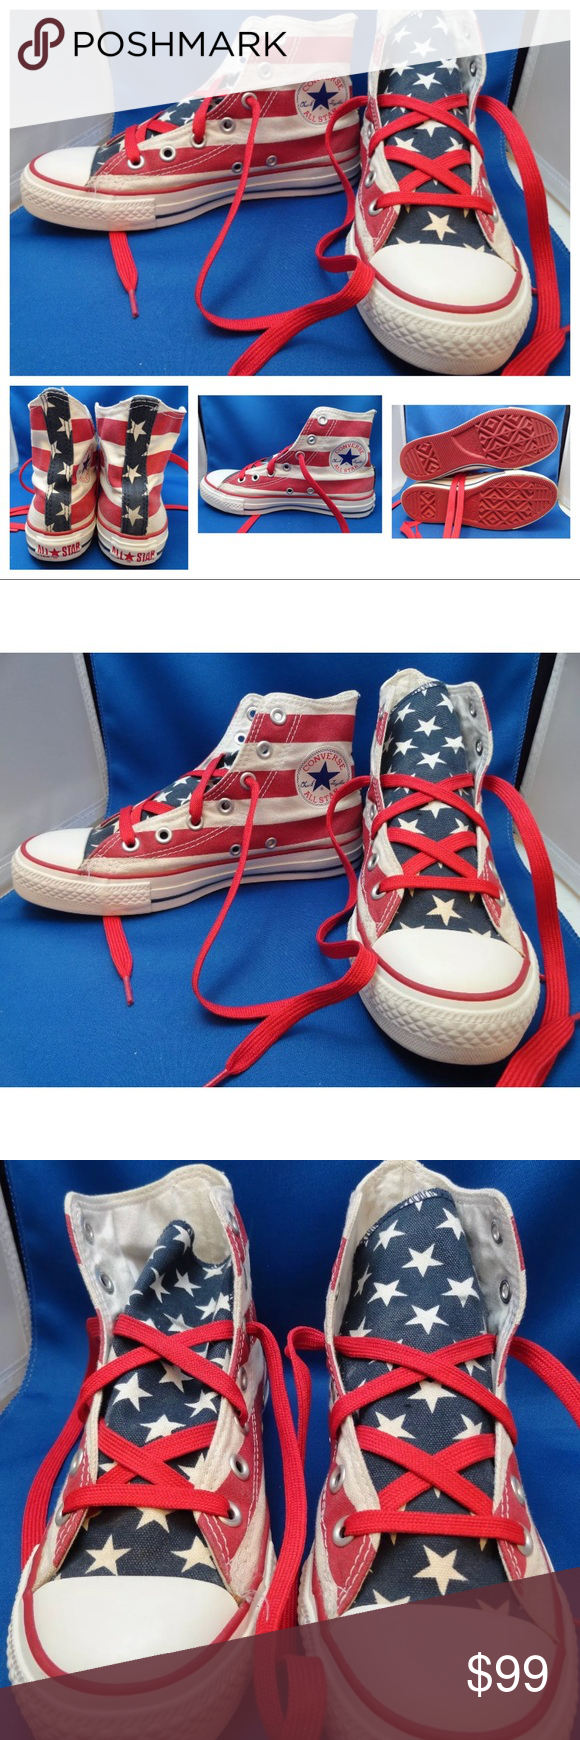 5d4851506ab82e Vintage RED SOLE American Flag Converse Sneakers